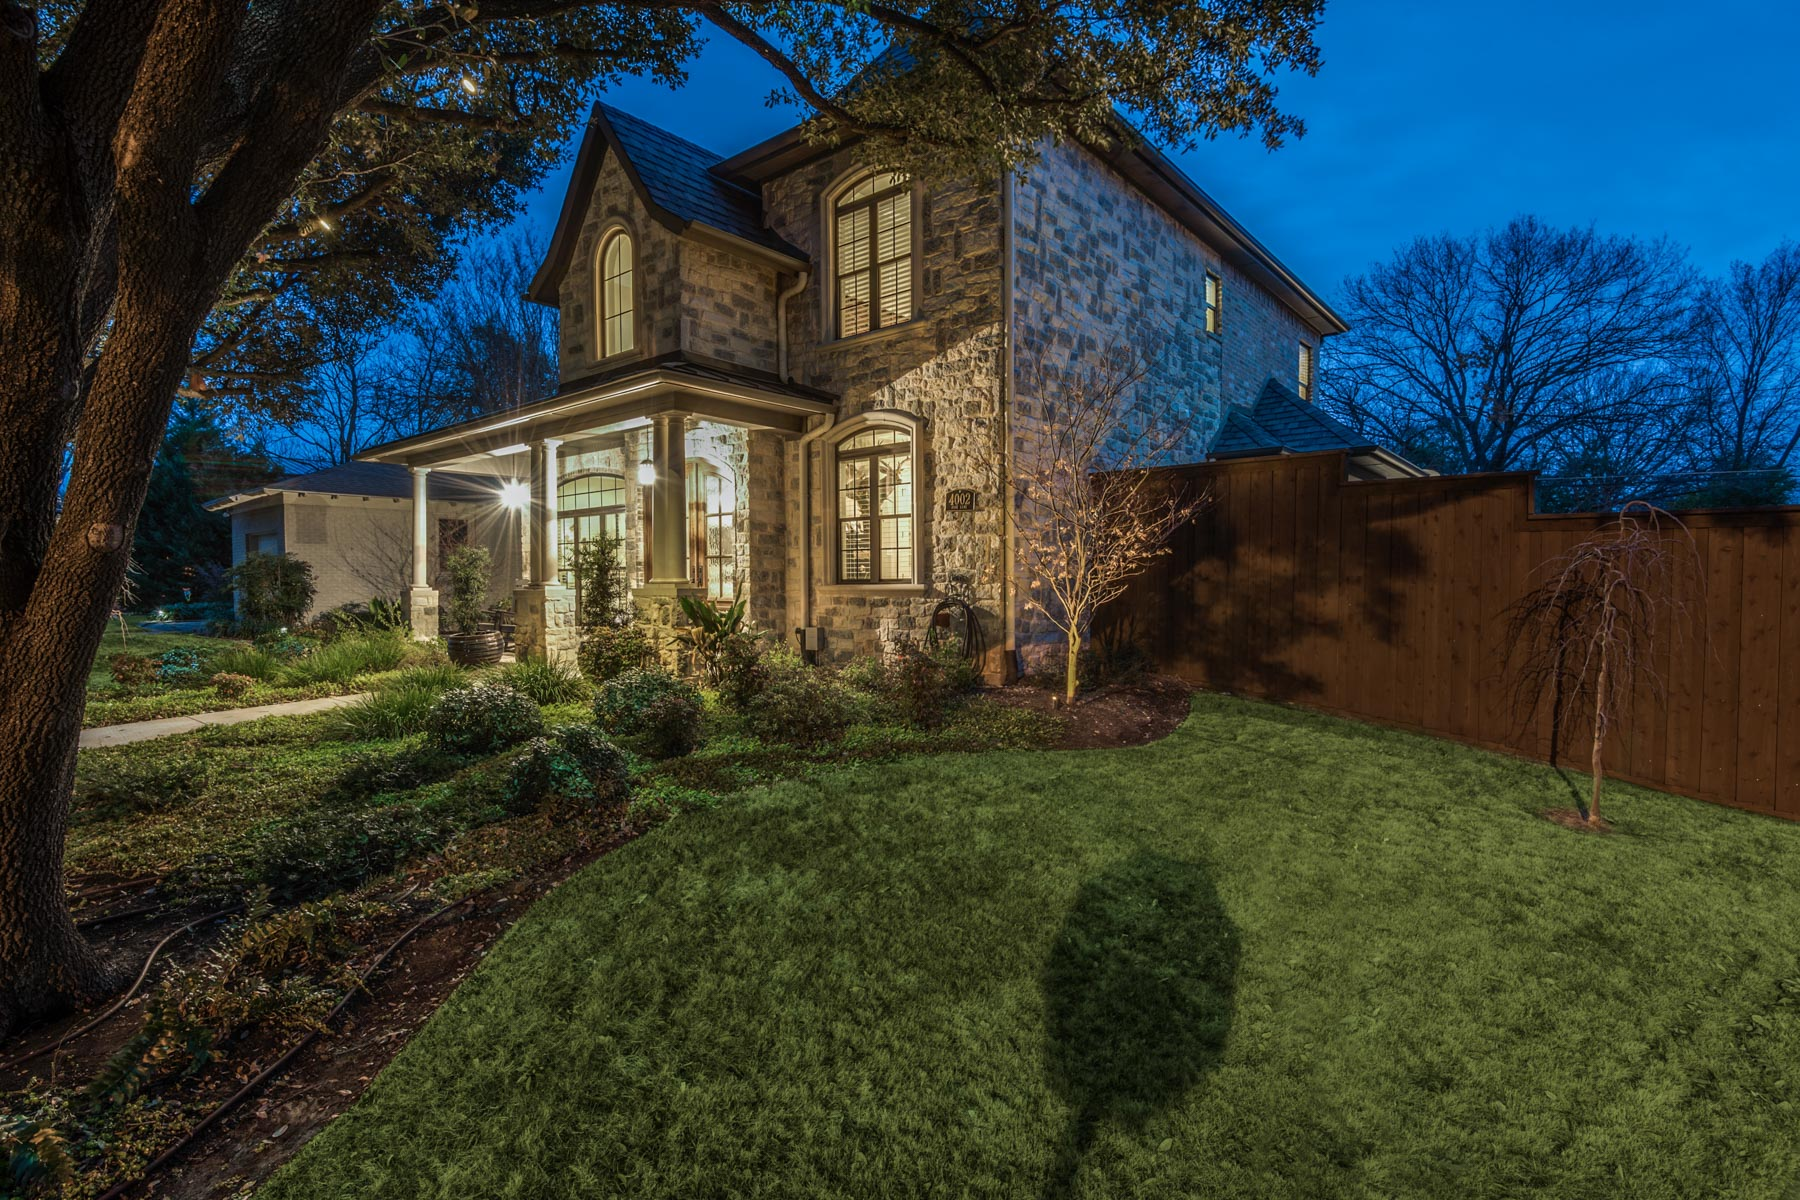 Maison unifamiliale pour l Vente à Gorgeous Midway Hollow Traditional 4002 Park Ln Dallas, Texas, 75220 États-Unis